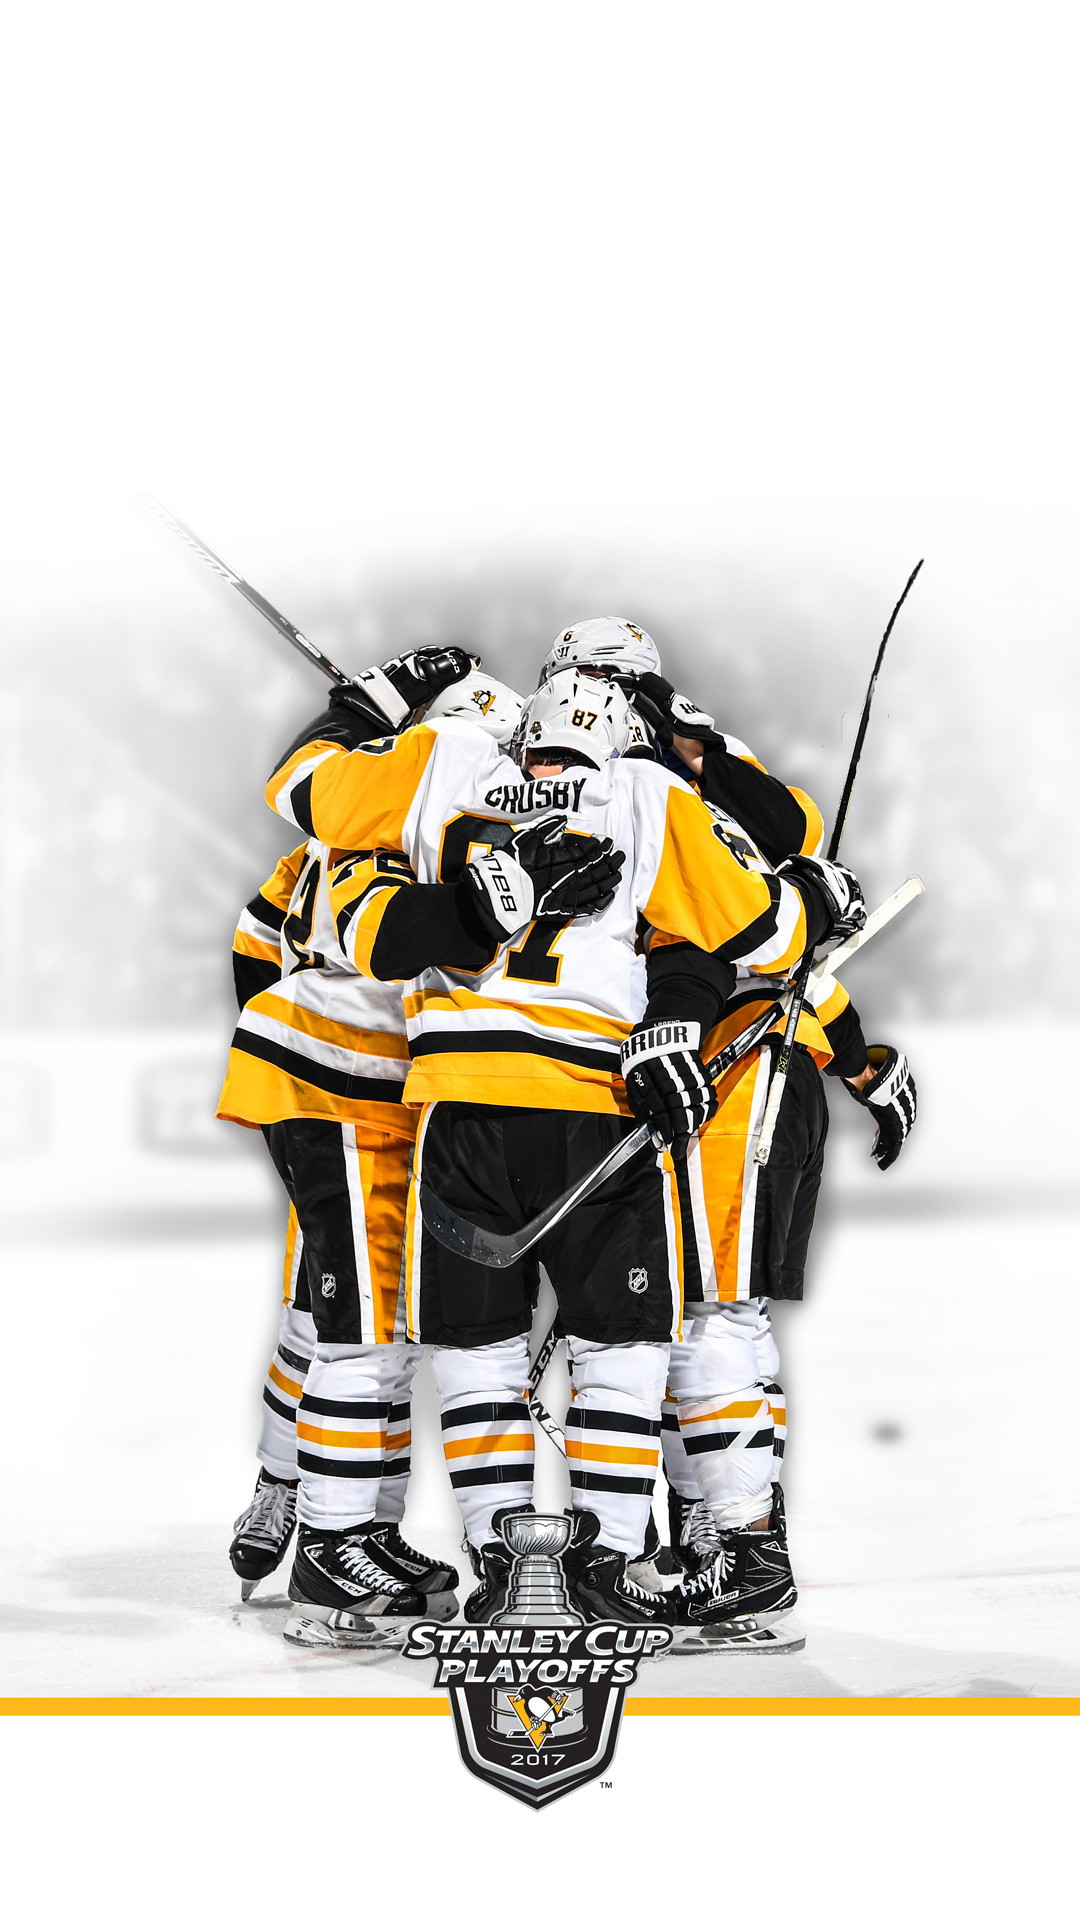 ICETIME WALLPAPERS